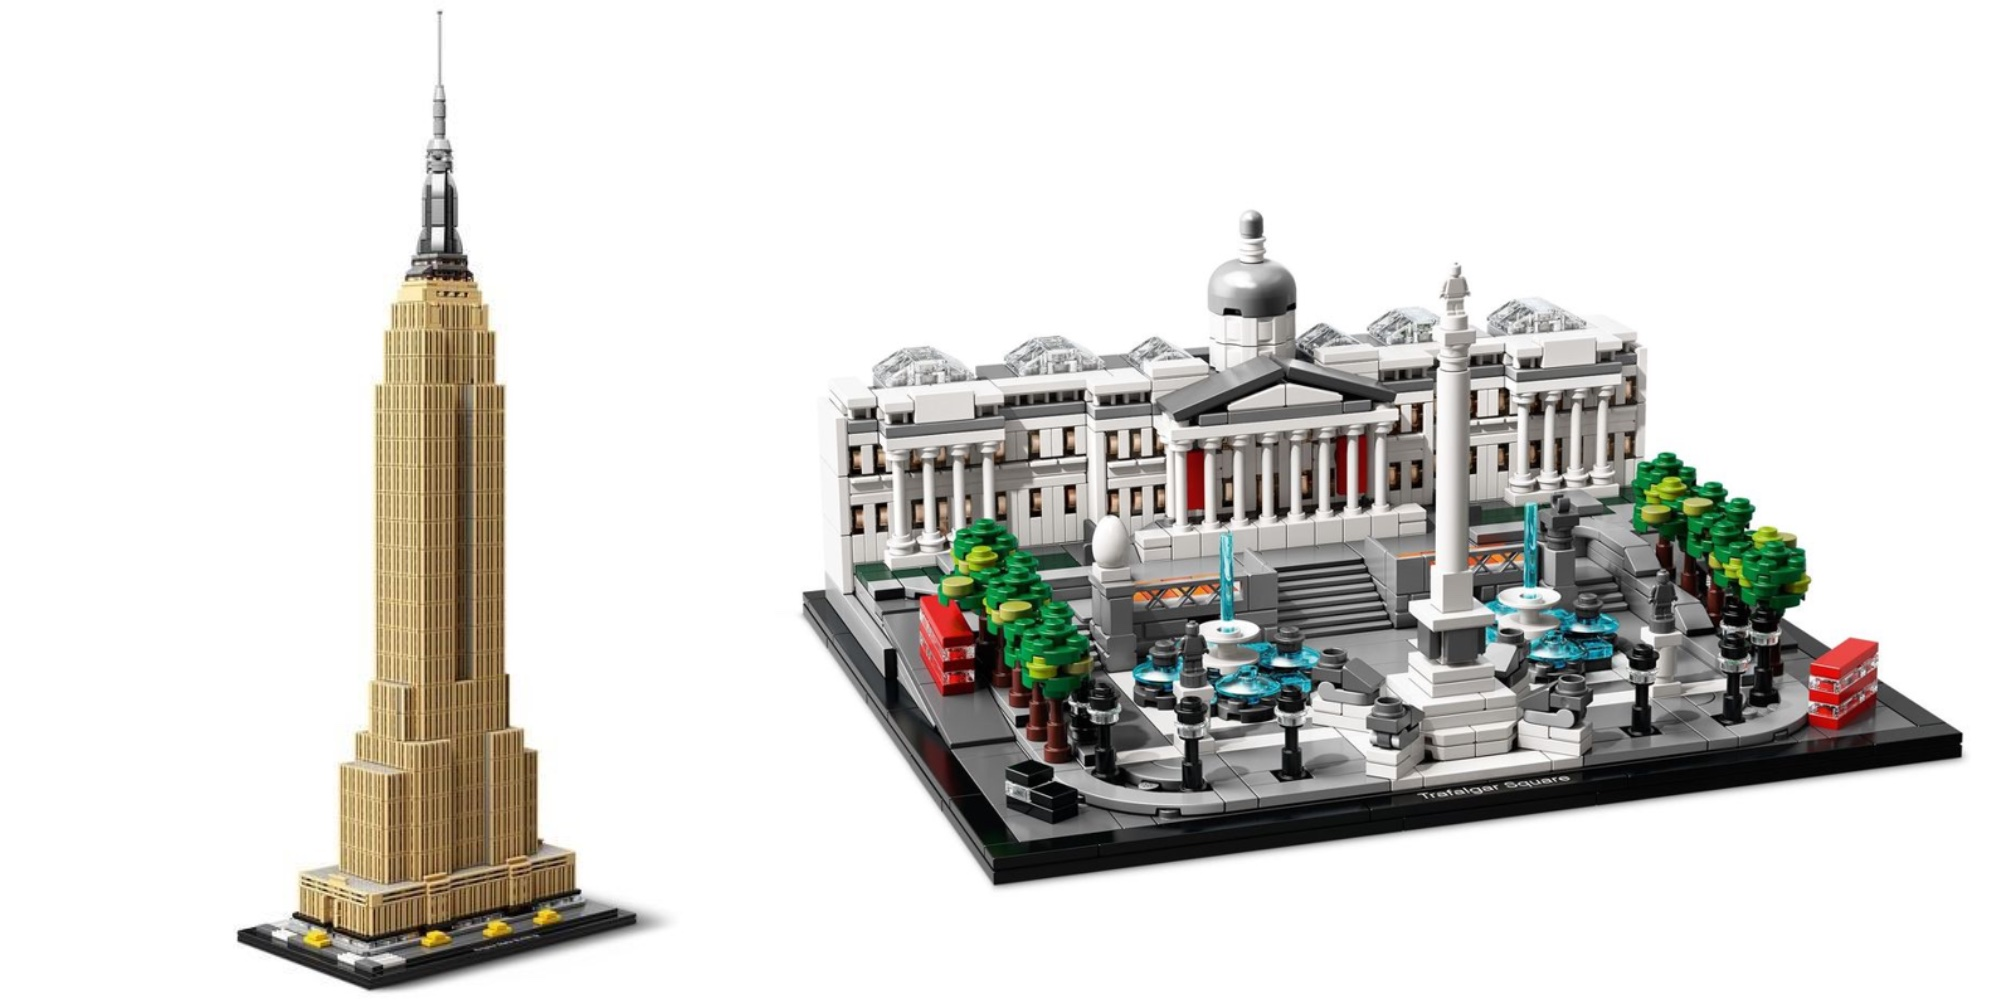 LEGO expands Architecture line with 1,700-piece Empire State Building and Trafalgar Square sets